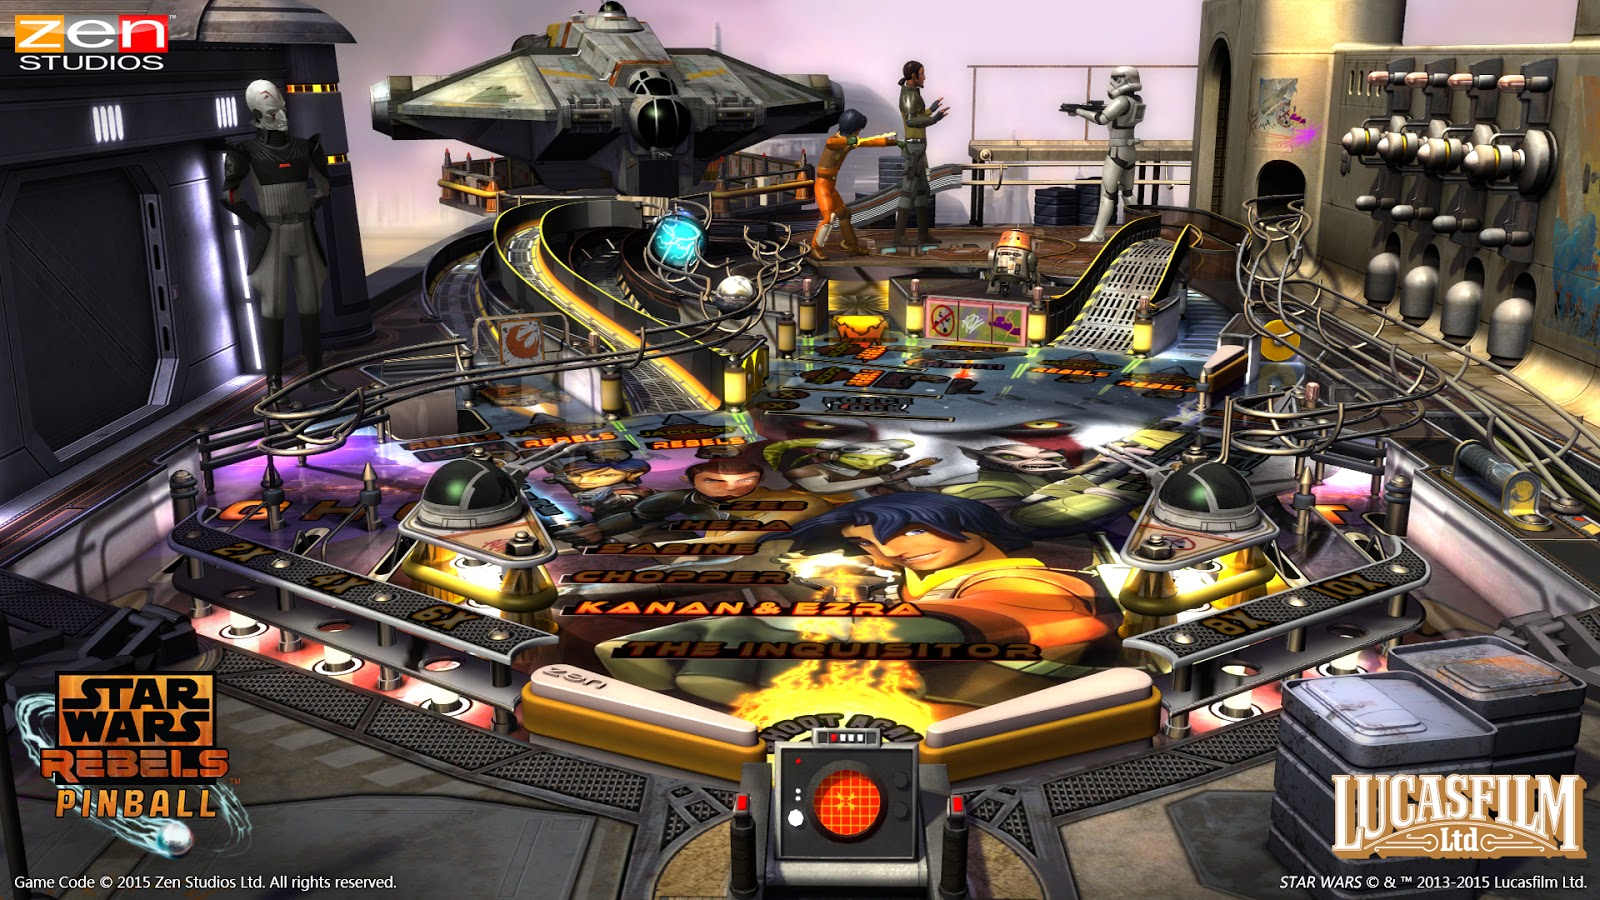 star wars, rebels, ps vita, pinball